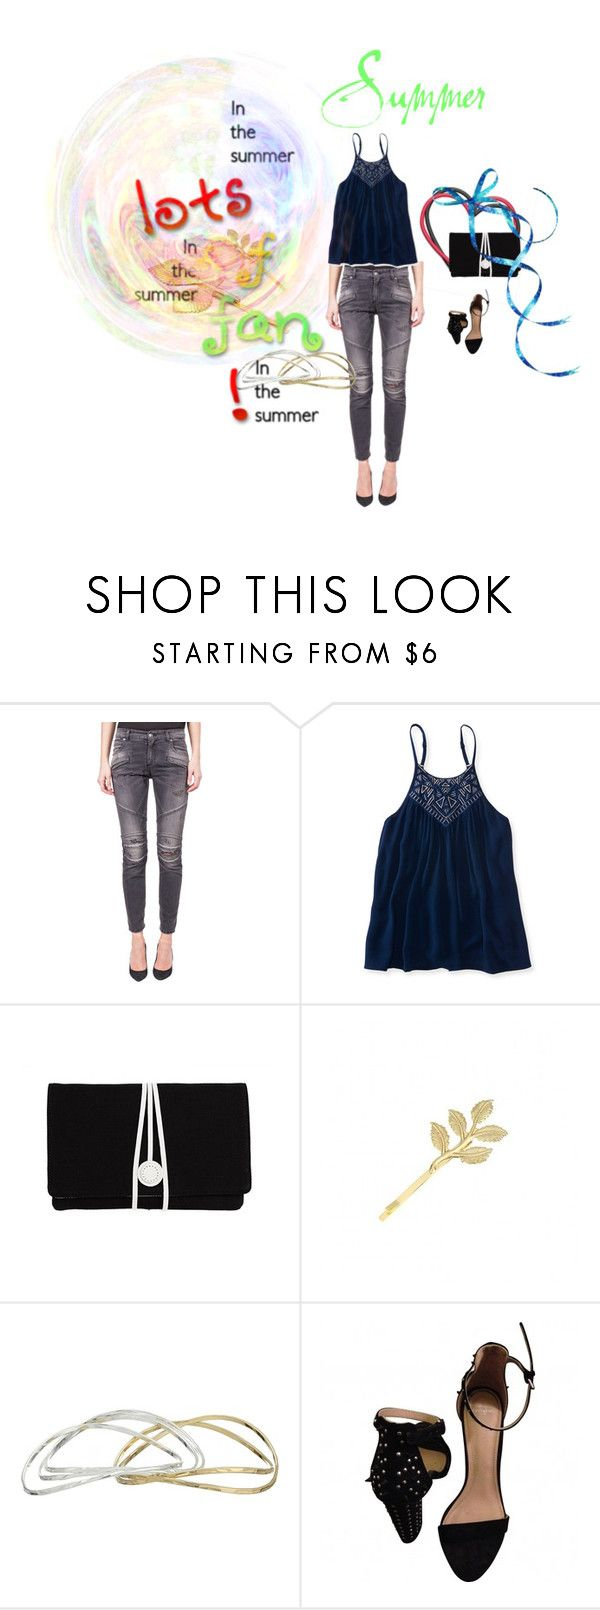 """Casual Chic 3"" by papillon-ze-cat ❤ liked on Polyvore featuring Pierre Balmain, Aéropostale, Torula Bags, Robert Lee Morris and Zara"